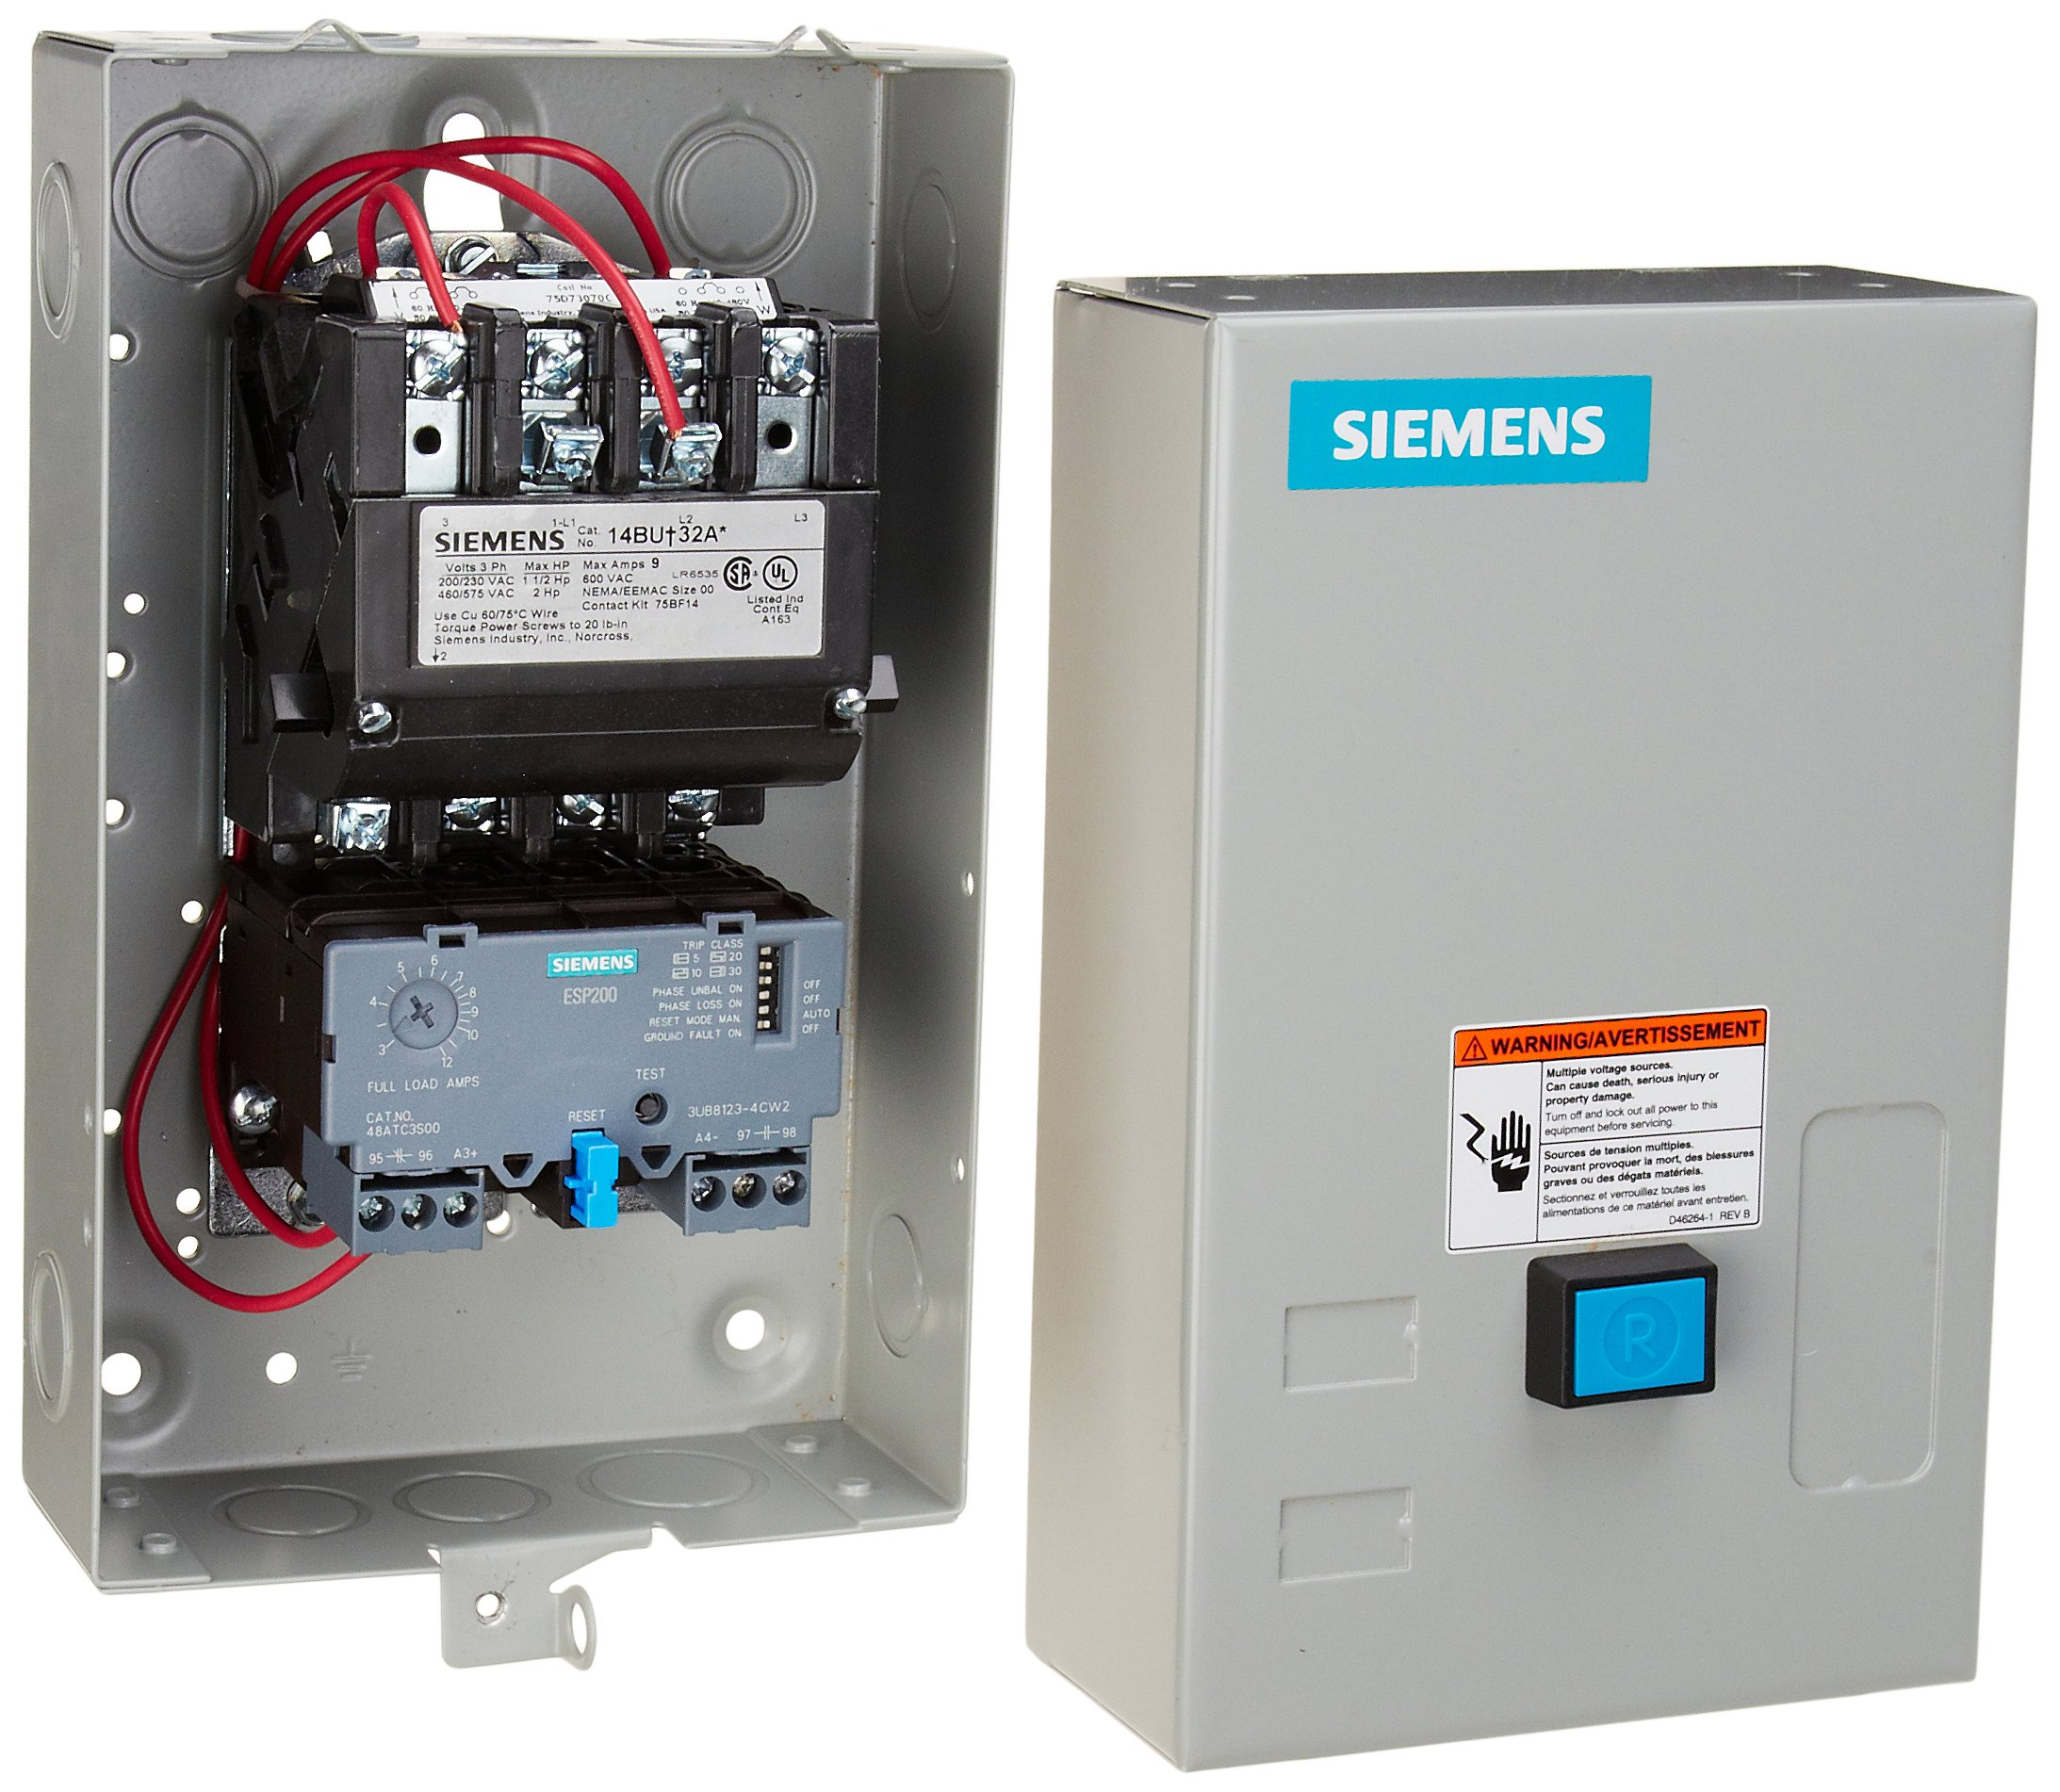 Siemens 14BUC32BC Heavy Duty Motor Starter, Solid State Overload, Auto/Manual Reset, Open Type, NEMA 1 General Purpose Enclosure, 3 Phase, 3 Pole, 00 NEMA Size, 3-12A Amp Range, A1 Frame Size, 220-240/440-480 at 60Hz Coil Voltage by SIEMENS (Image #1)